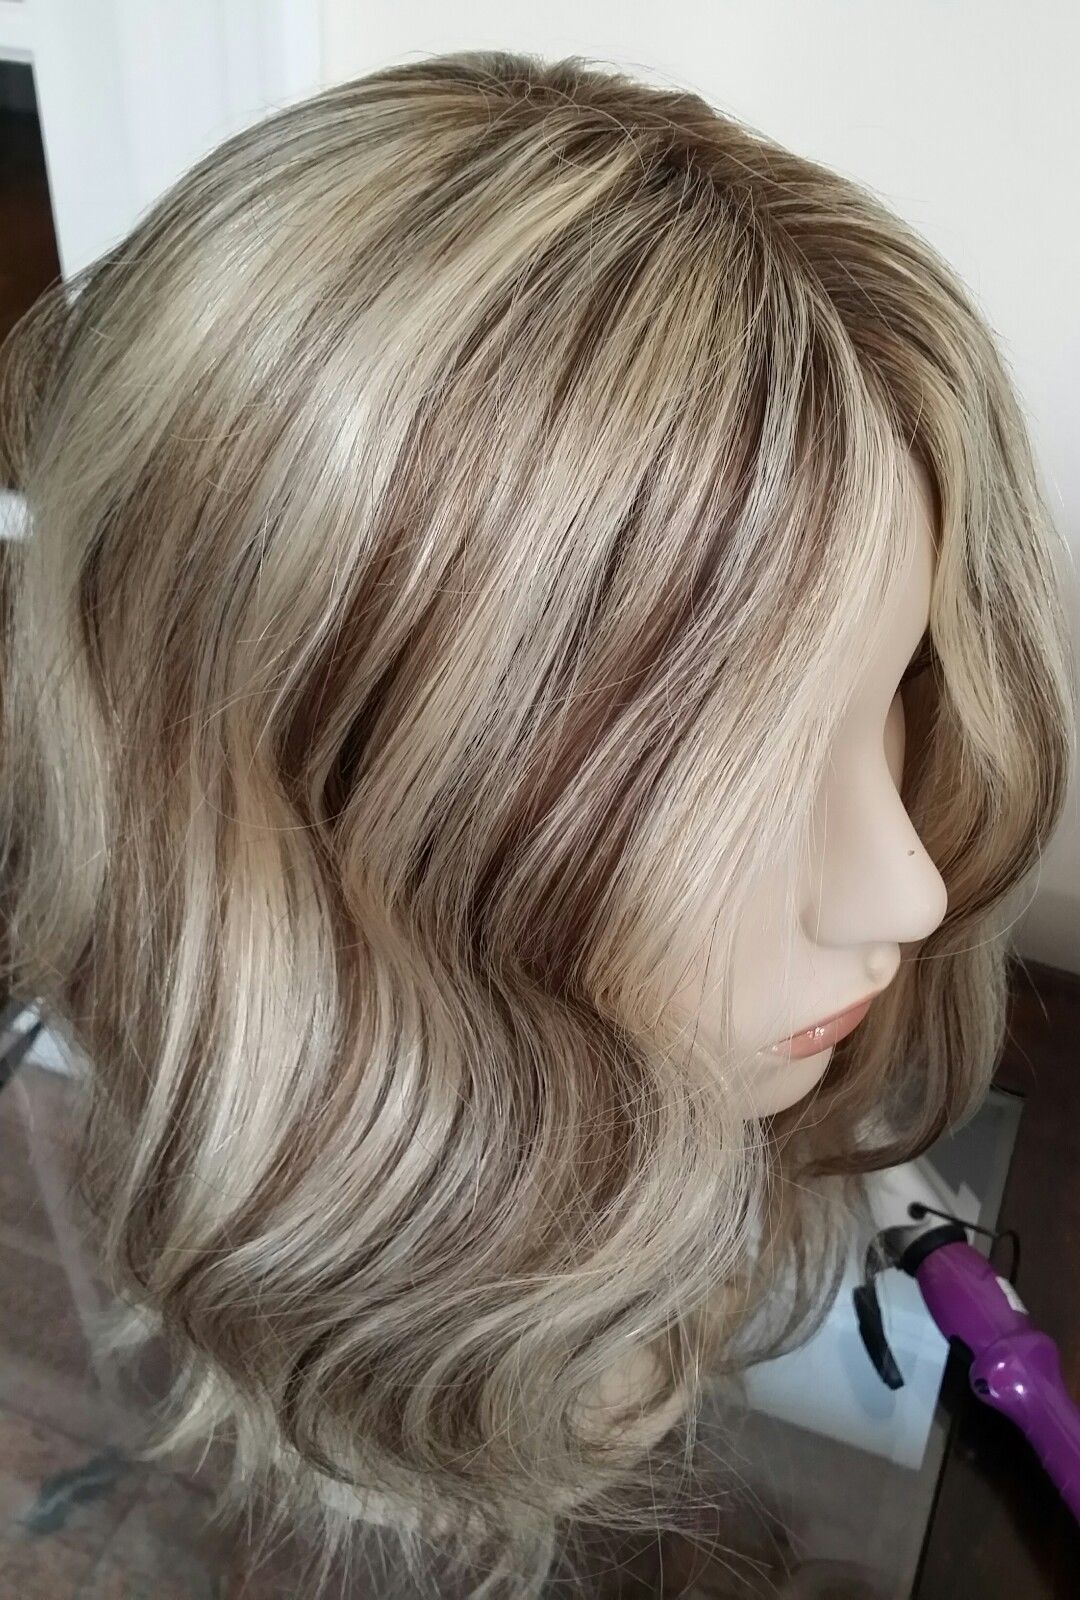 964d7f82ce Mixed Blonde Color,With Lowlights hair topper,How to deal with hair loss or  thinning hair among women,the best hair loss remedy,dark black color loose  wavy ...